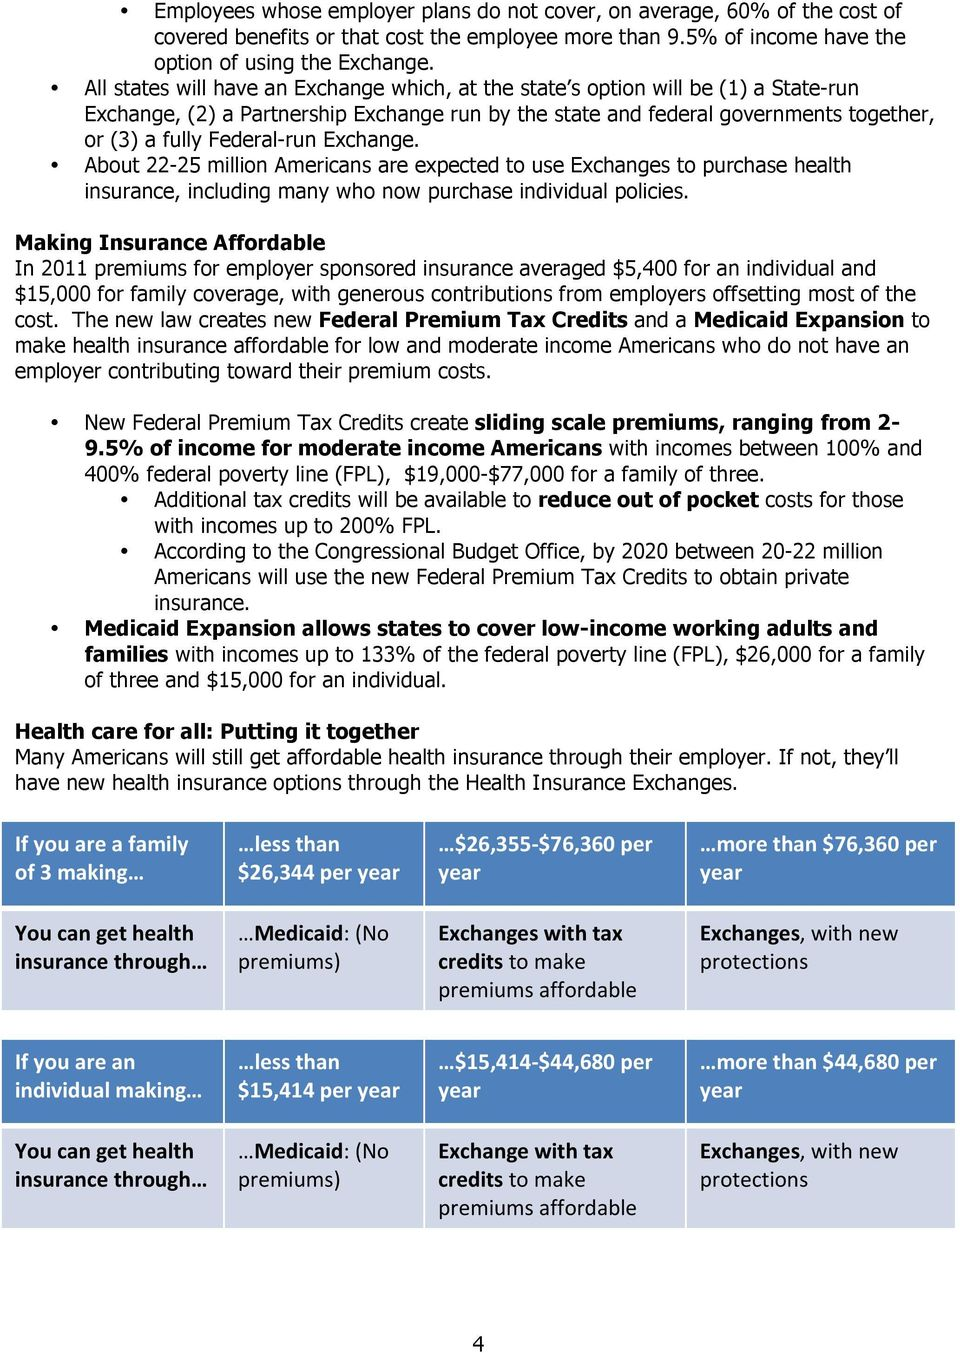 Federal-run Exchange. About 22-25 million Americans are expected to use Exchanges to purchase health insurance, including many who now purchase individual policies.